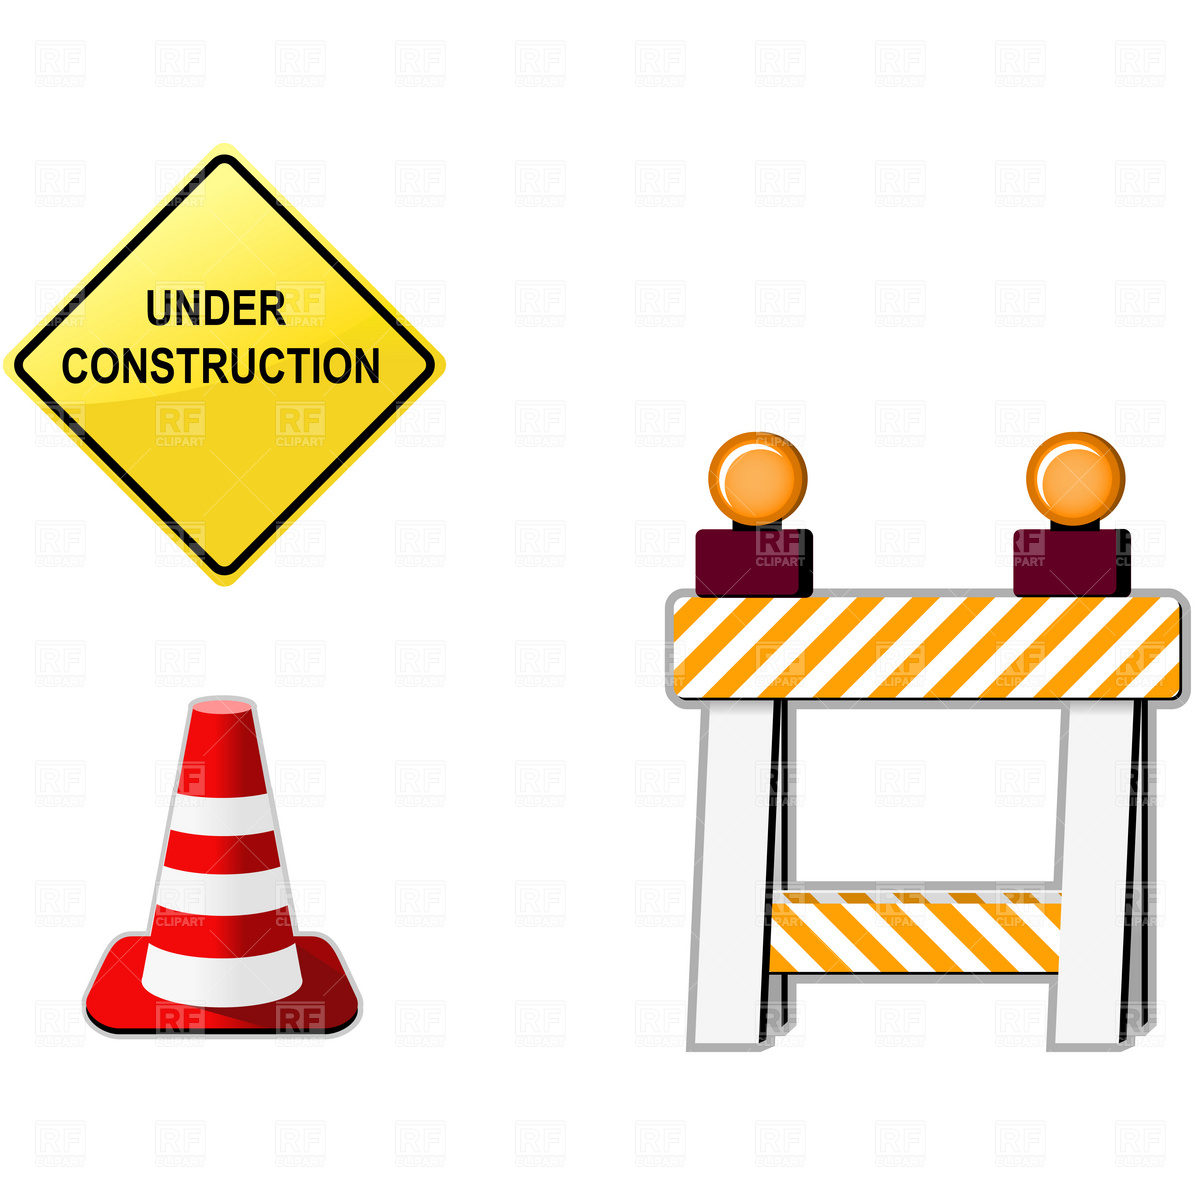 Paving Construction Cliparts Free Download Clip Art.